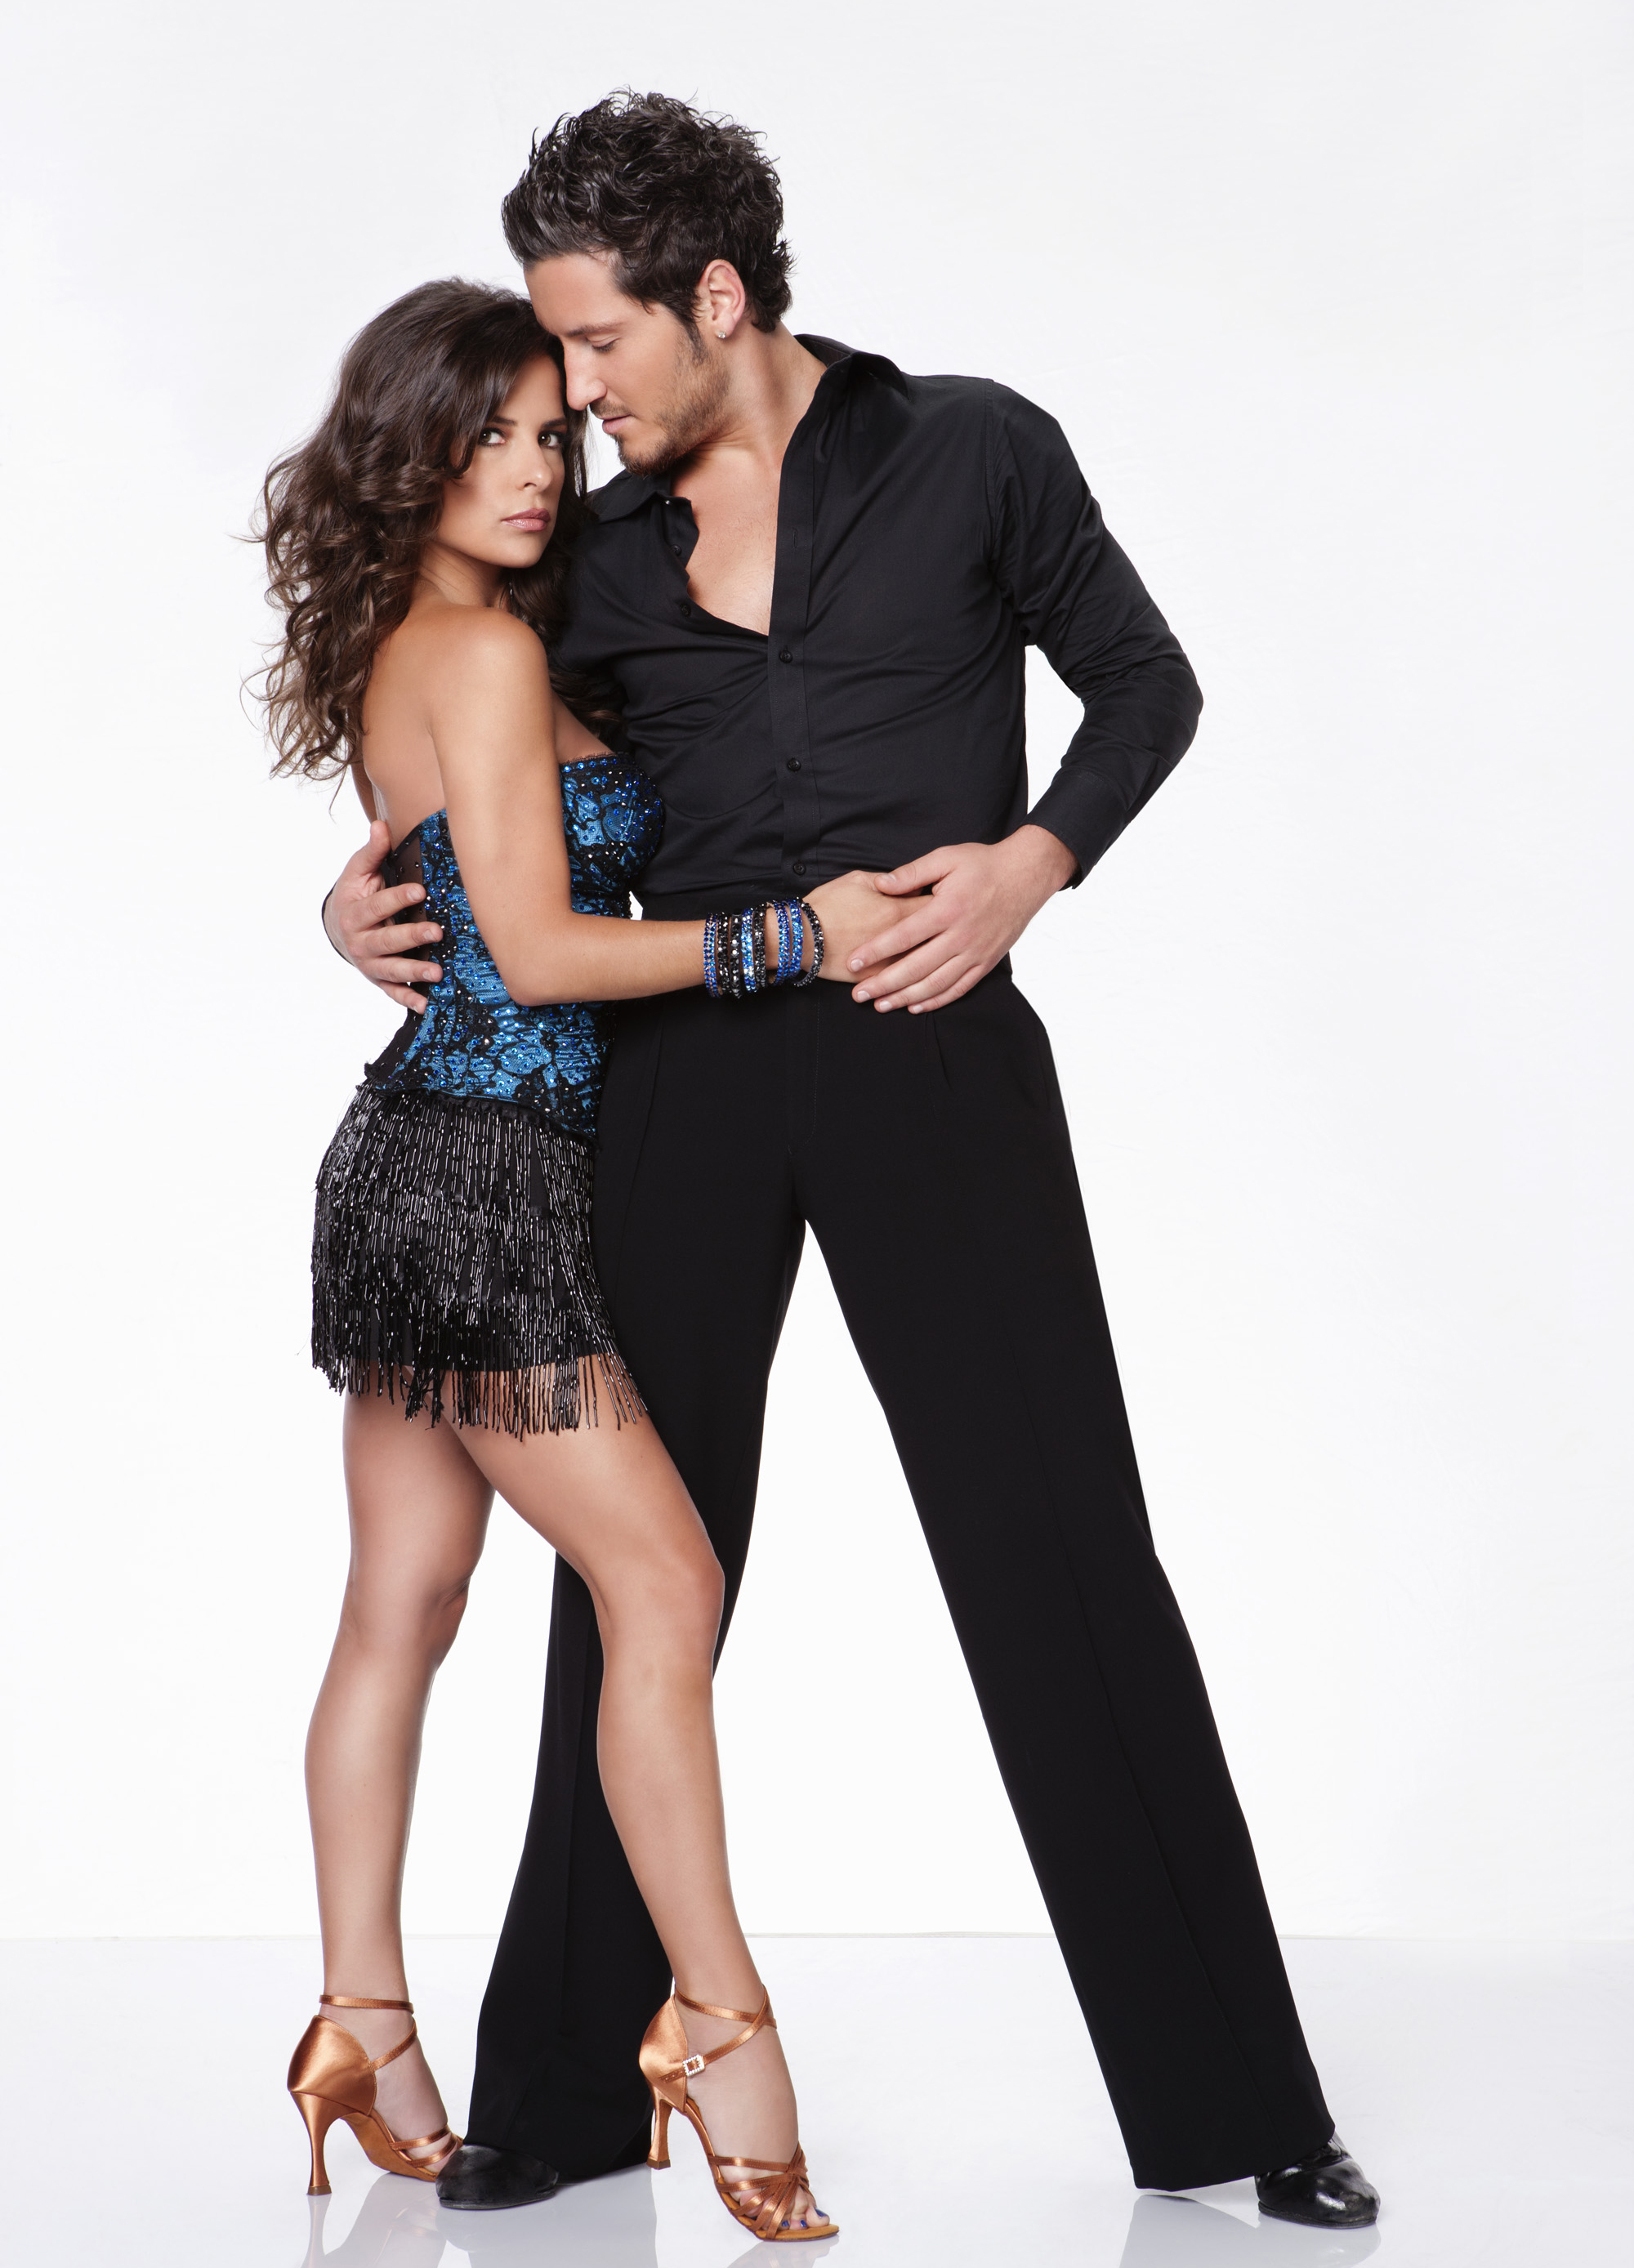 Couples dating from dancing with the stars